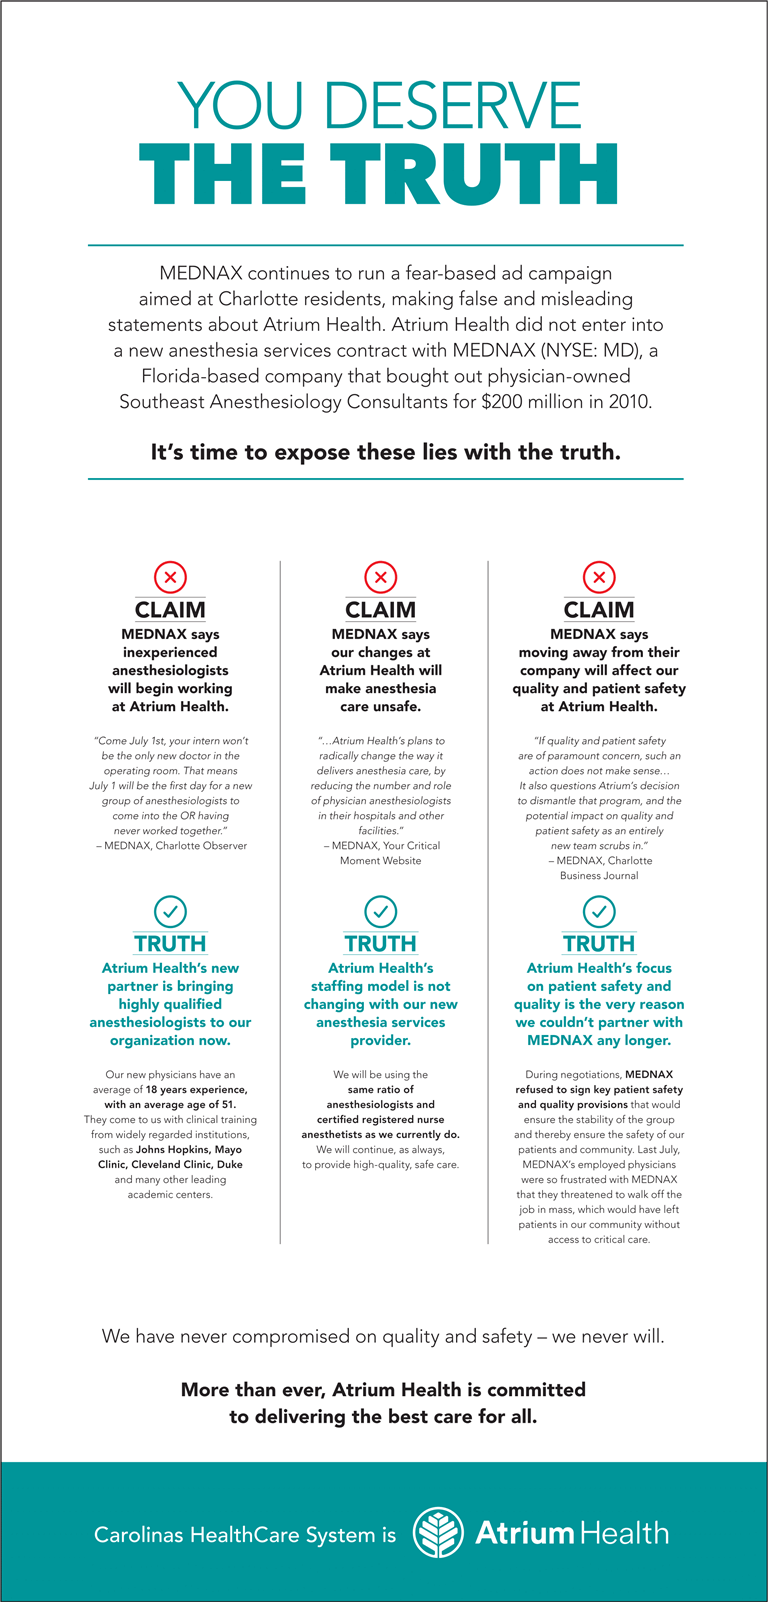 You deserve the truth. Mednax continues to run a fear-based ad campaign aimed at Charlotte residents, making false and misleading statements about Atrium Health. Atrium Health did not enter into a new anesthesia services contract with MEDNAX (NYSE: MD), a Florida-based company that bought out physician-owned Southeast Anesthesiology Consultants for $200 million in 2010.